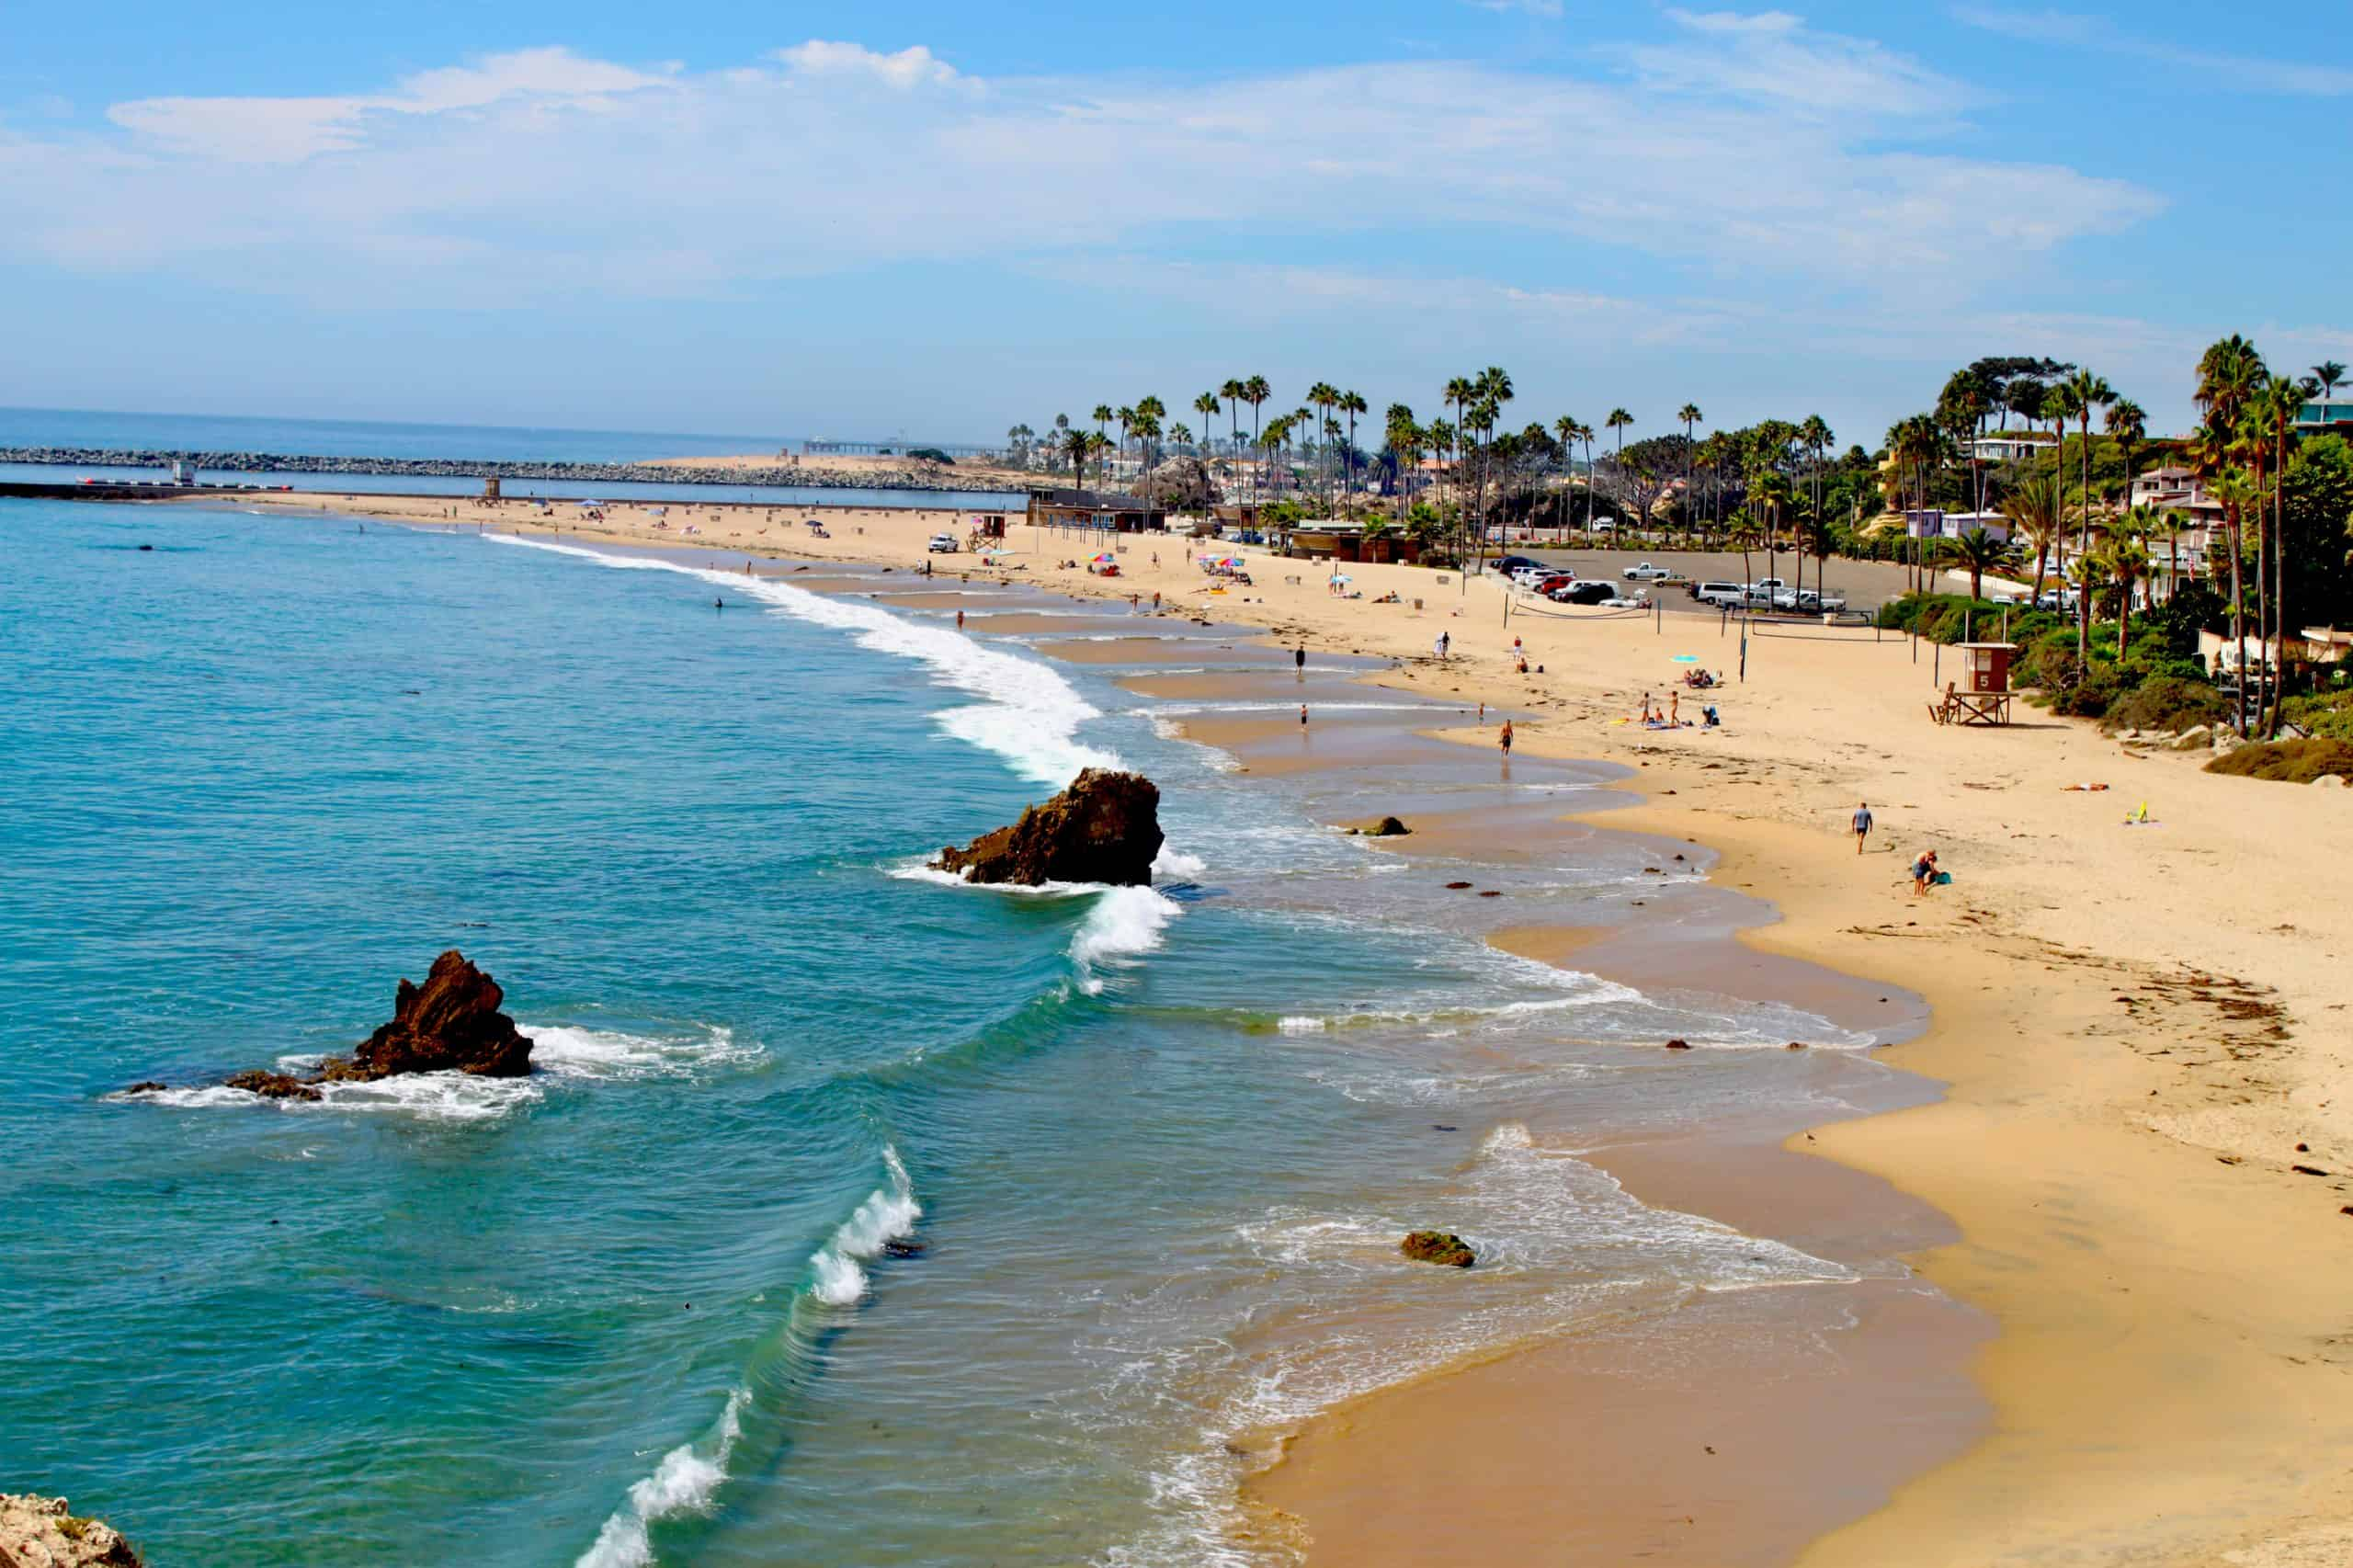 Blue water and sand at Corona Del Mar State Beach.